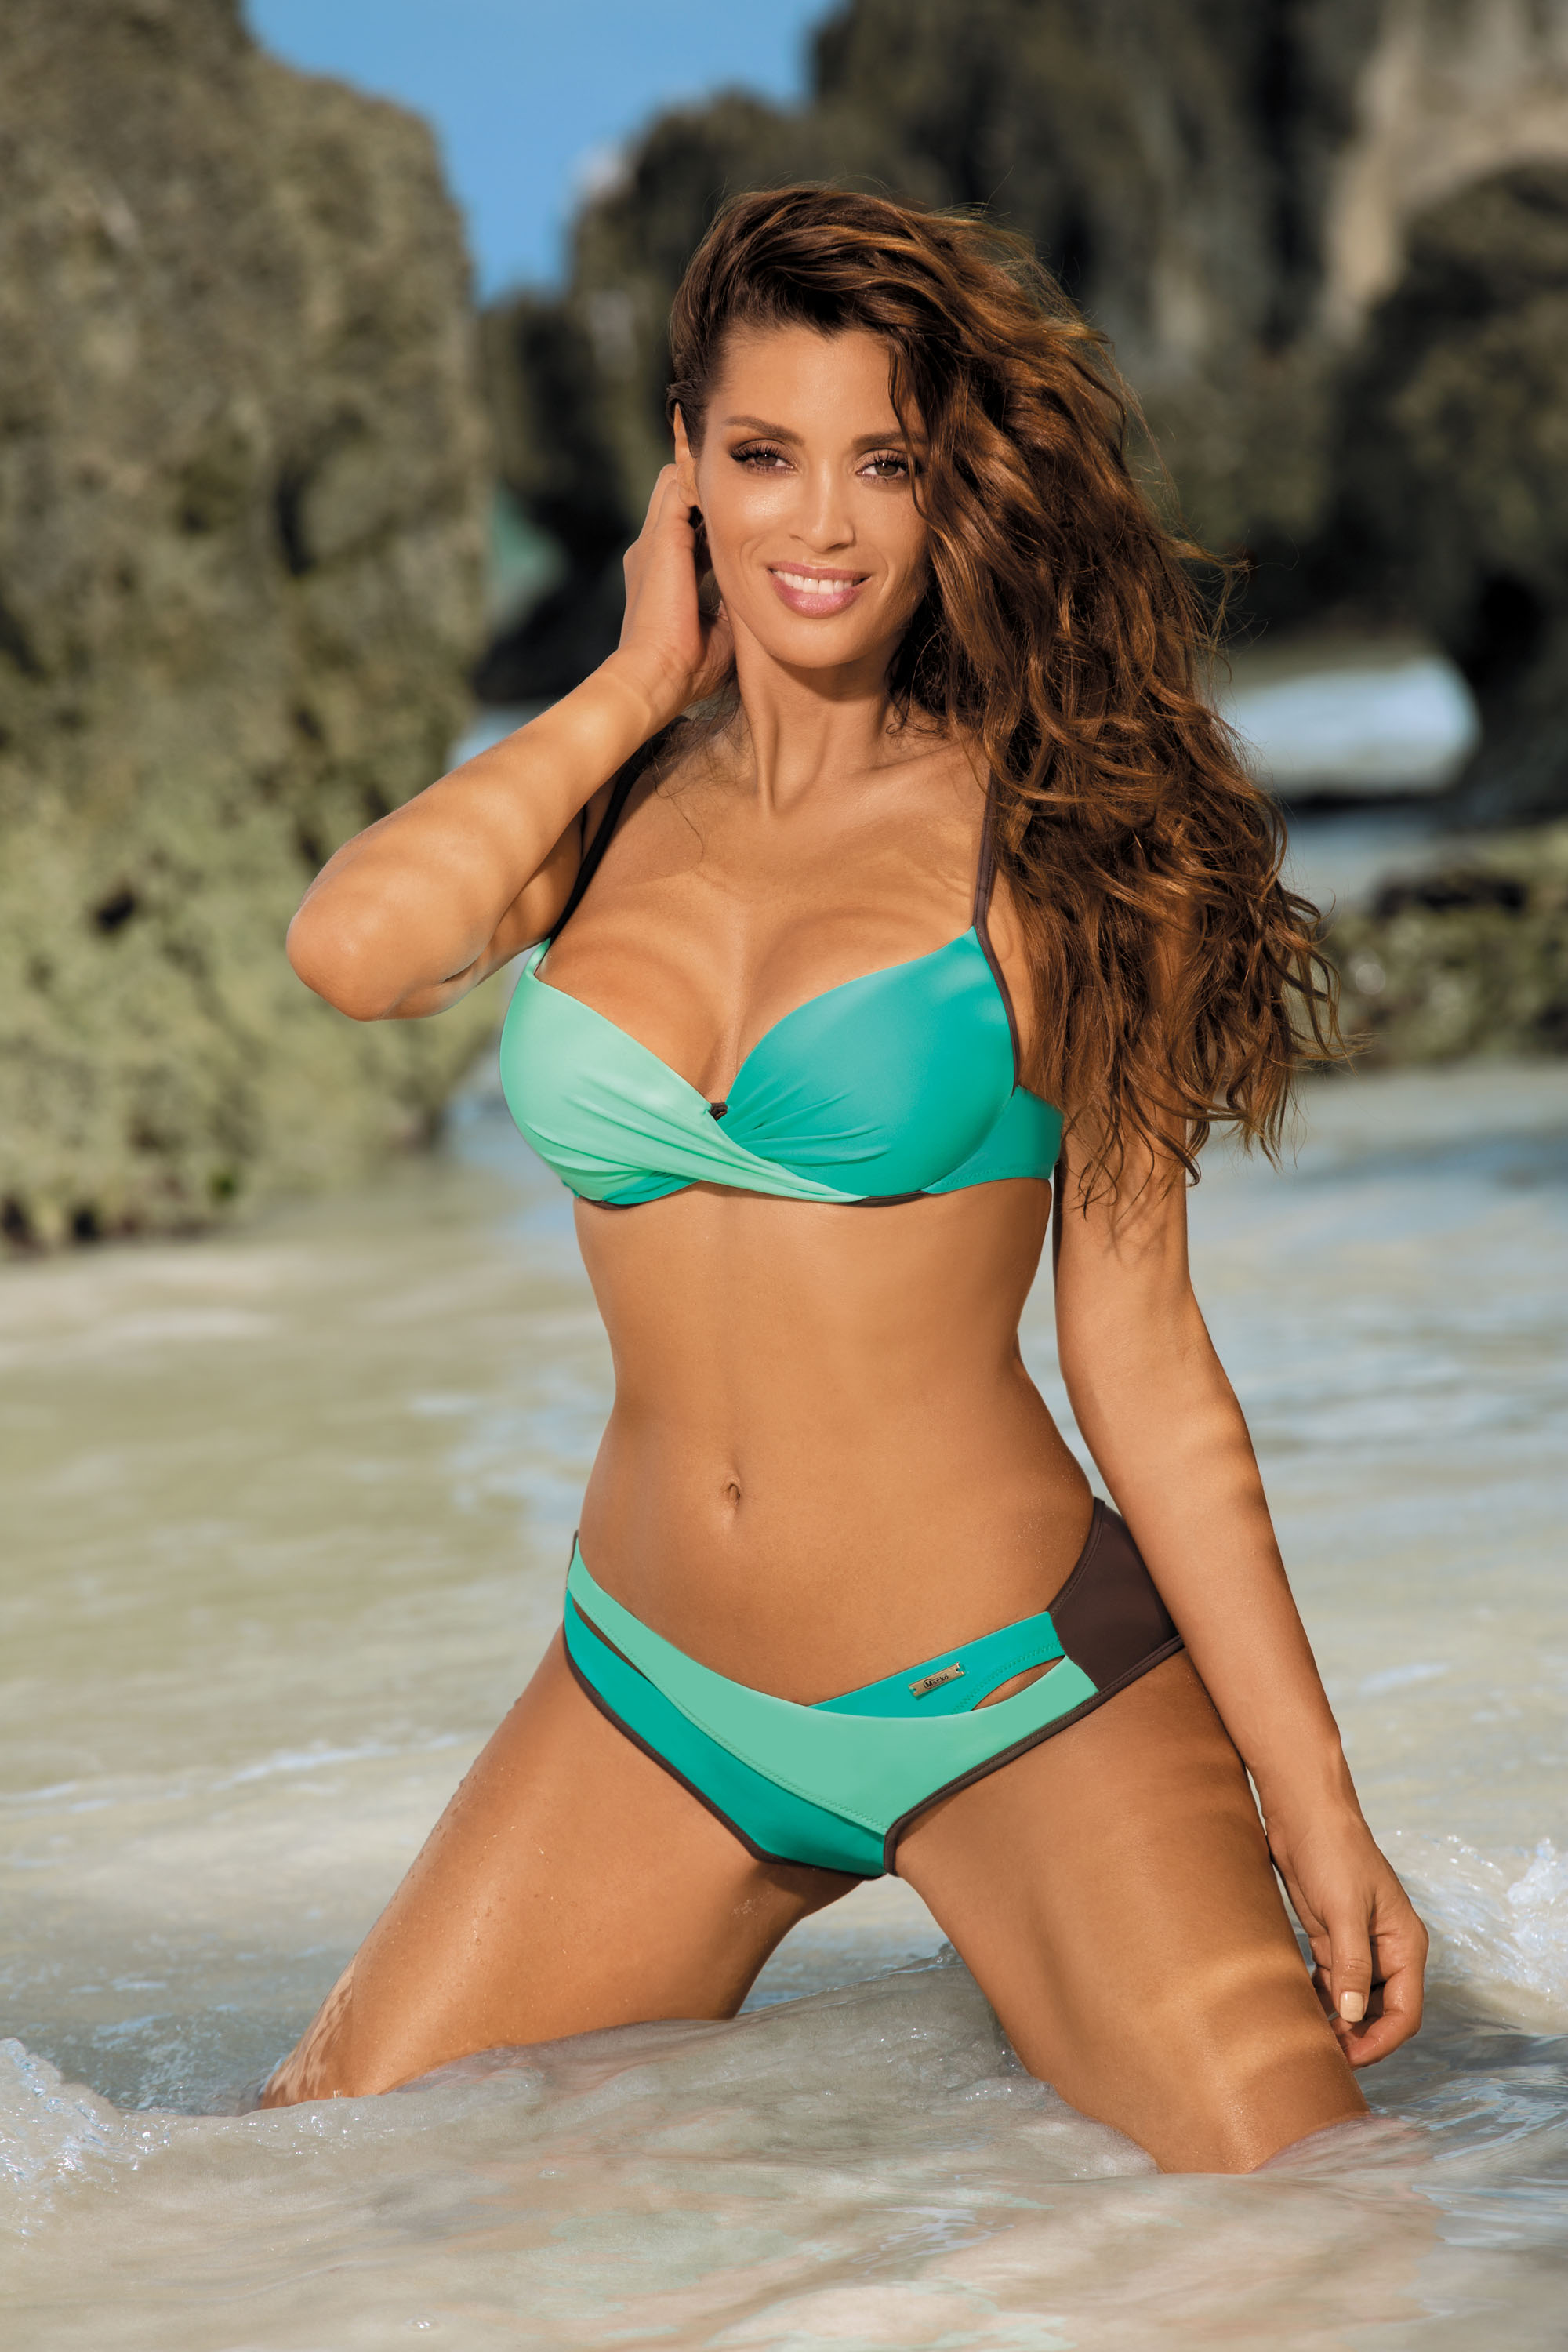 Turquoise swimsuit from two pieces with classic bottoms with push-up cups